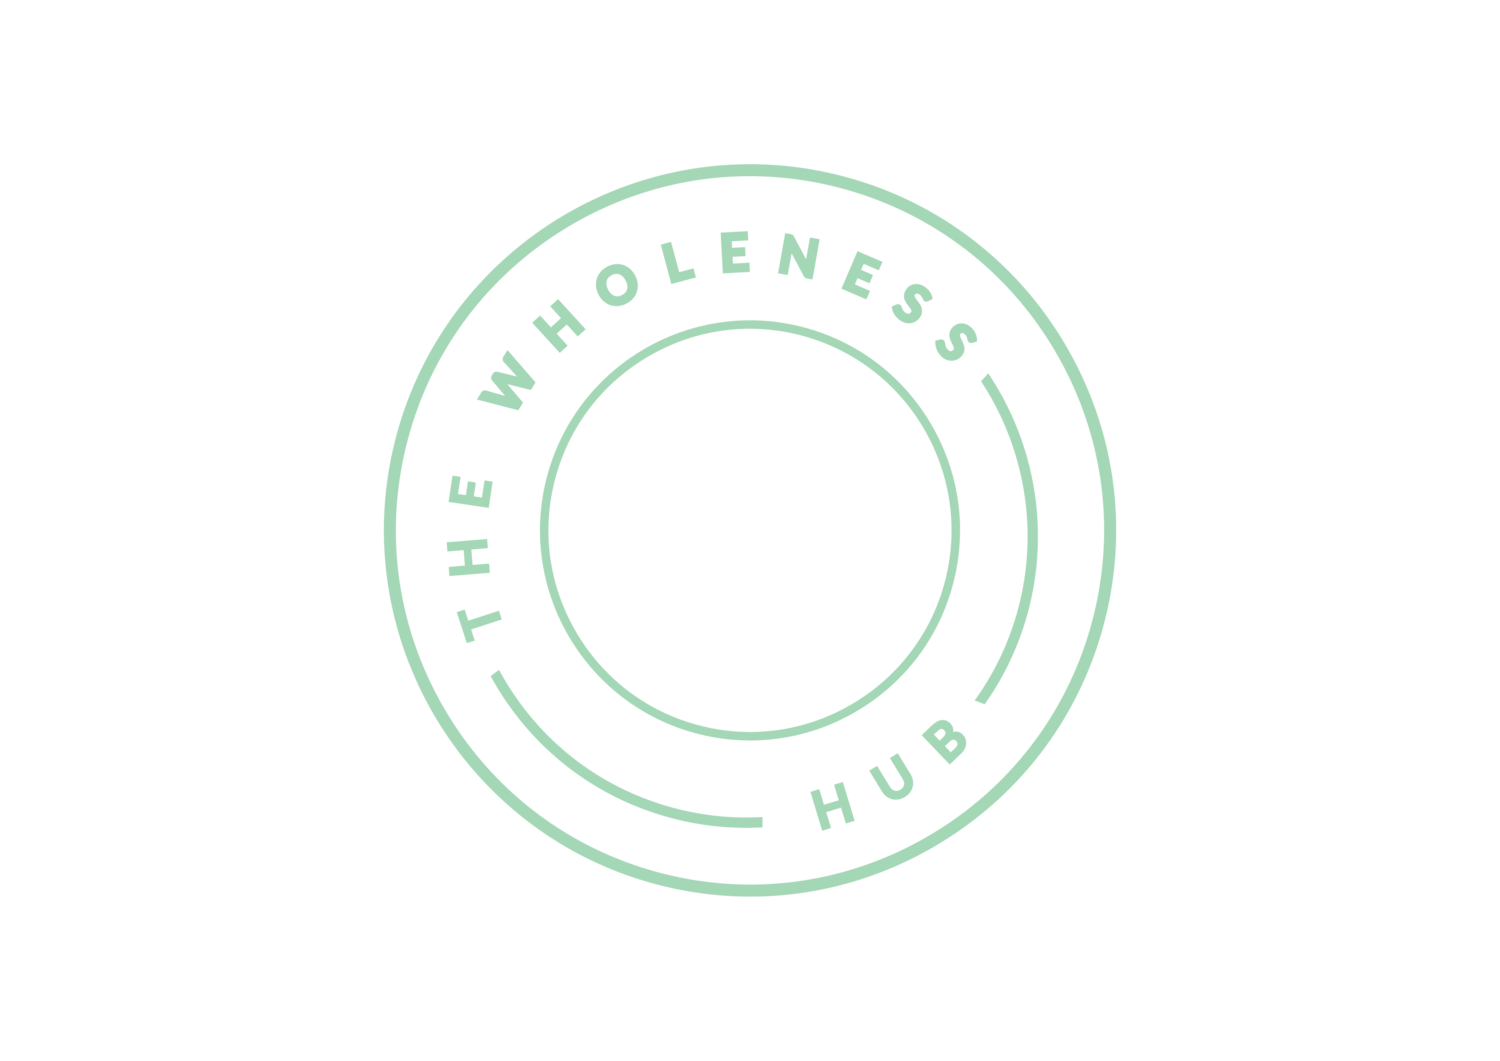 The Wholeness Hub